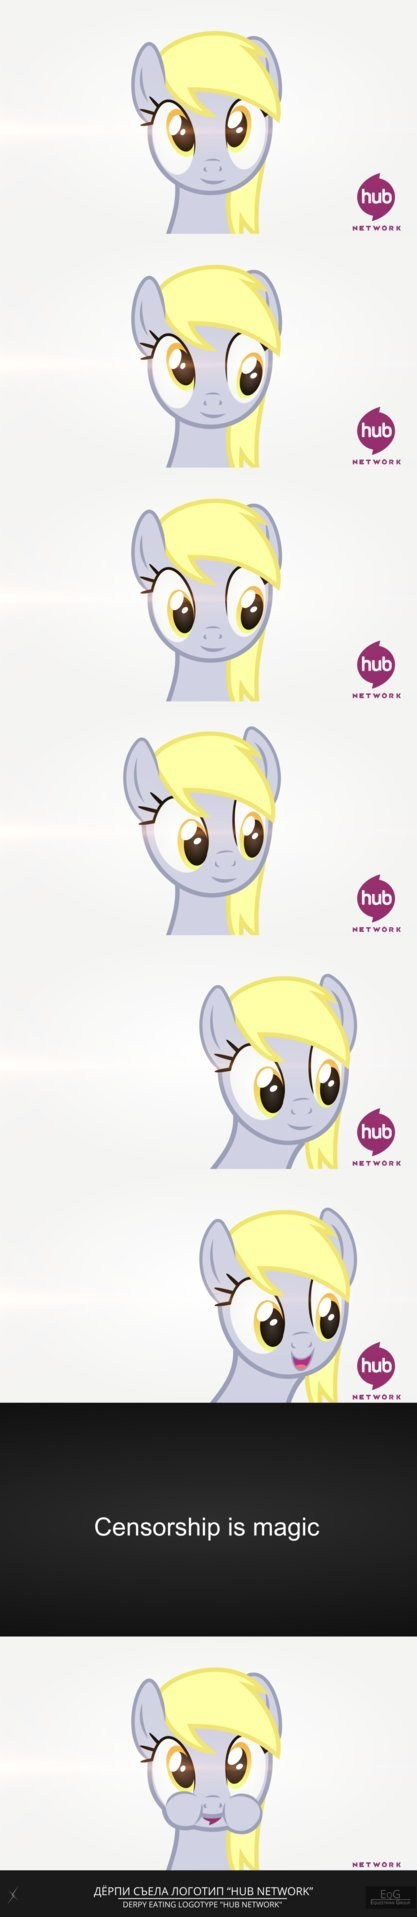 derpy hooves,hub,Fan Art